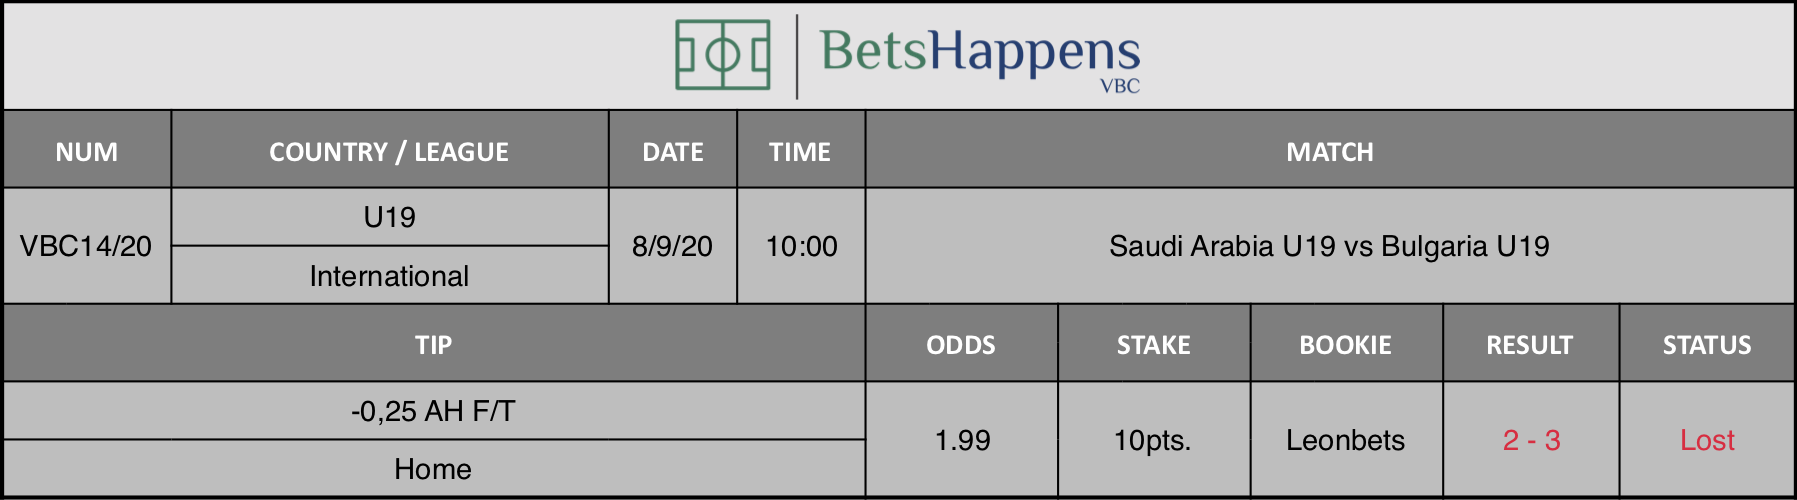 Results of our advice for the Saudi Arabia U19 vs Bulgaria U19 match in which -0.25 AH F / T Home is recommended.